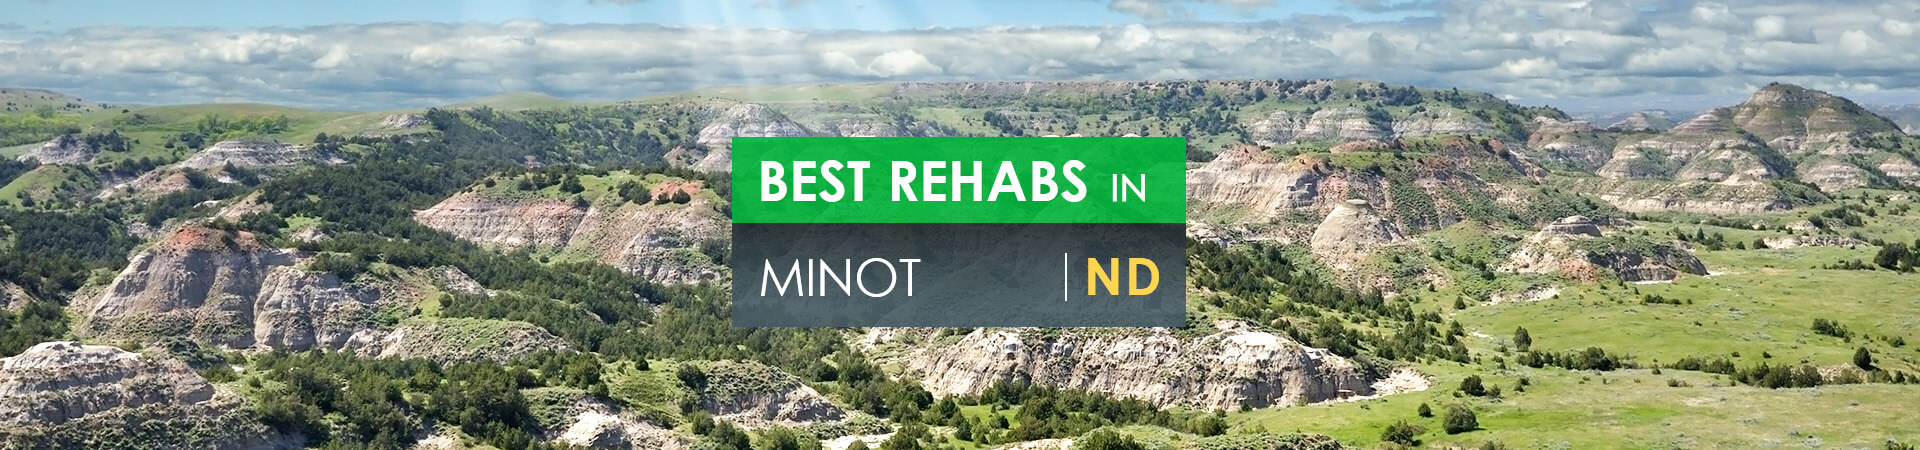 Best rehabs in Minot, ND